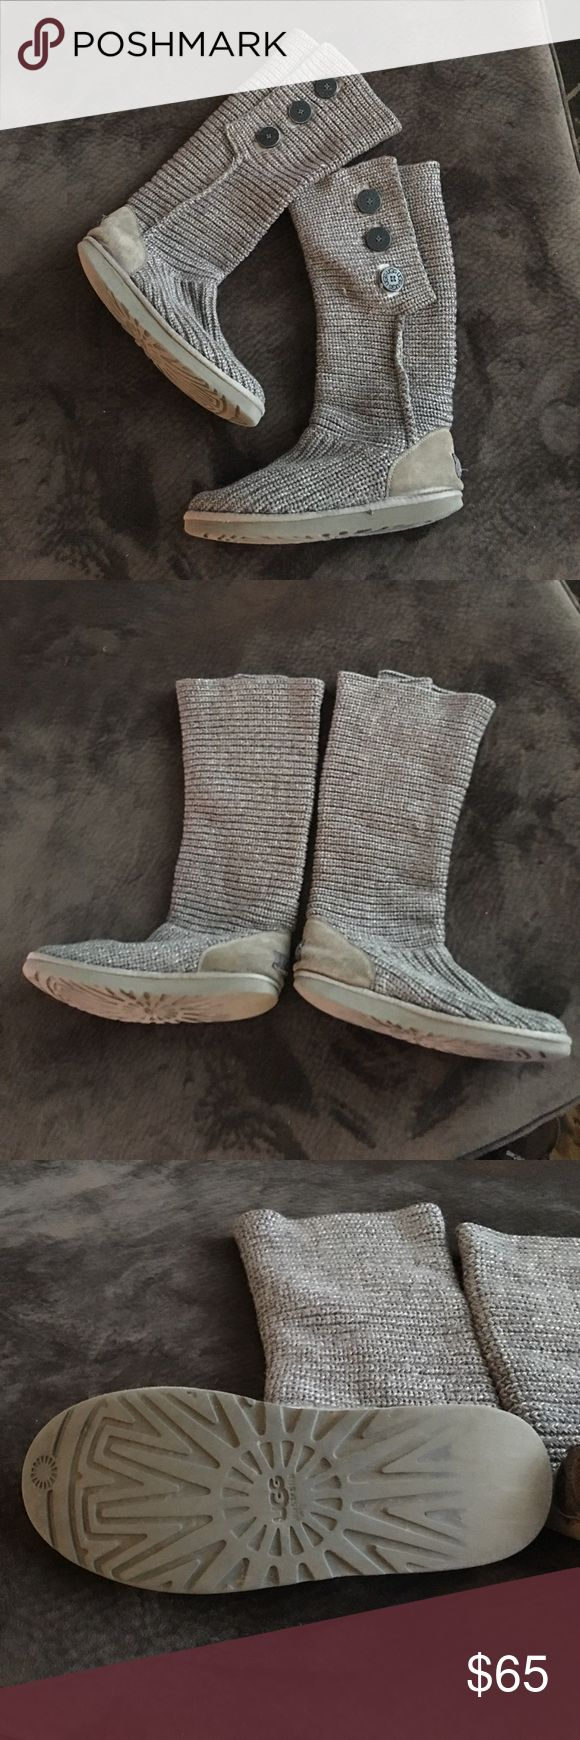 grey ugg knit boots! Ugg knit boots! Asking 65, or make me an offer. Originally 150$. They look a little worn, but still in good condition and comfy! No snags in the boots!                                 Same day shipping! 🌺🌺 UGG Shoes Winter & Rain Boots